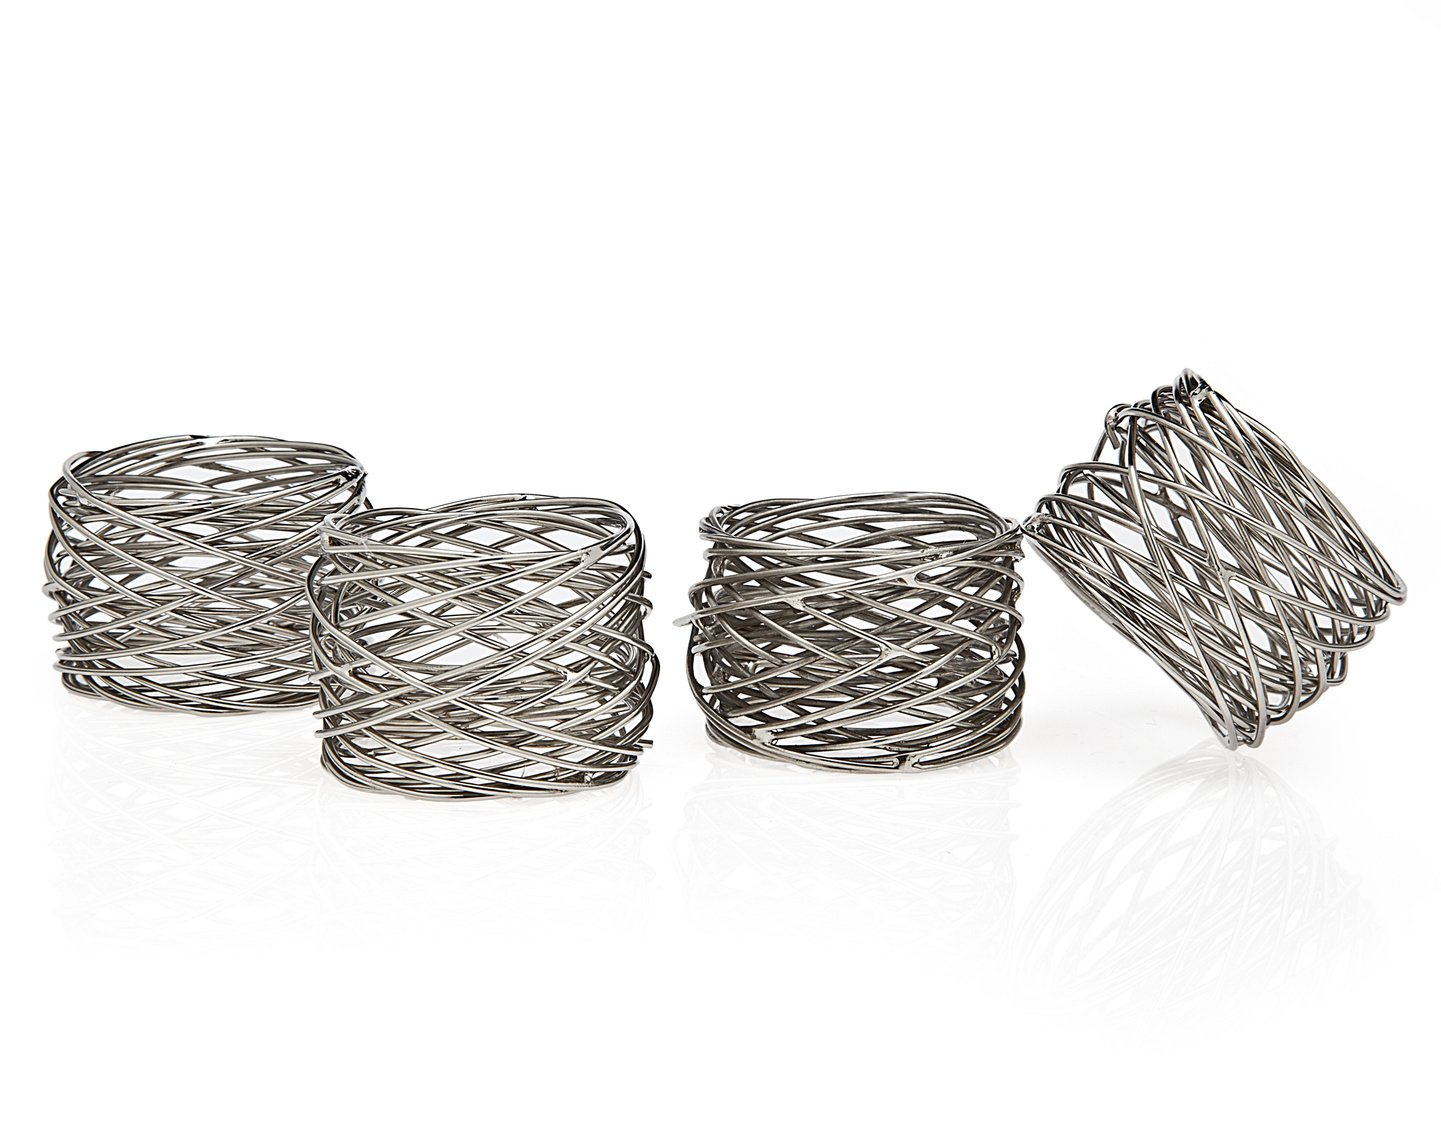 (Silver Mesh, Set of 4) - Godinger 94251 Round Mesh Napkin Ring - Set of 4,   B01CFMKTQA